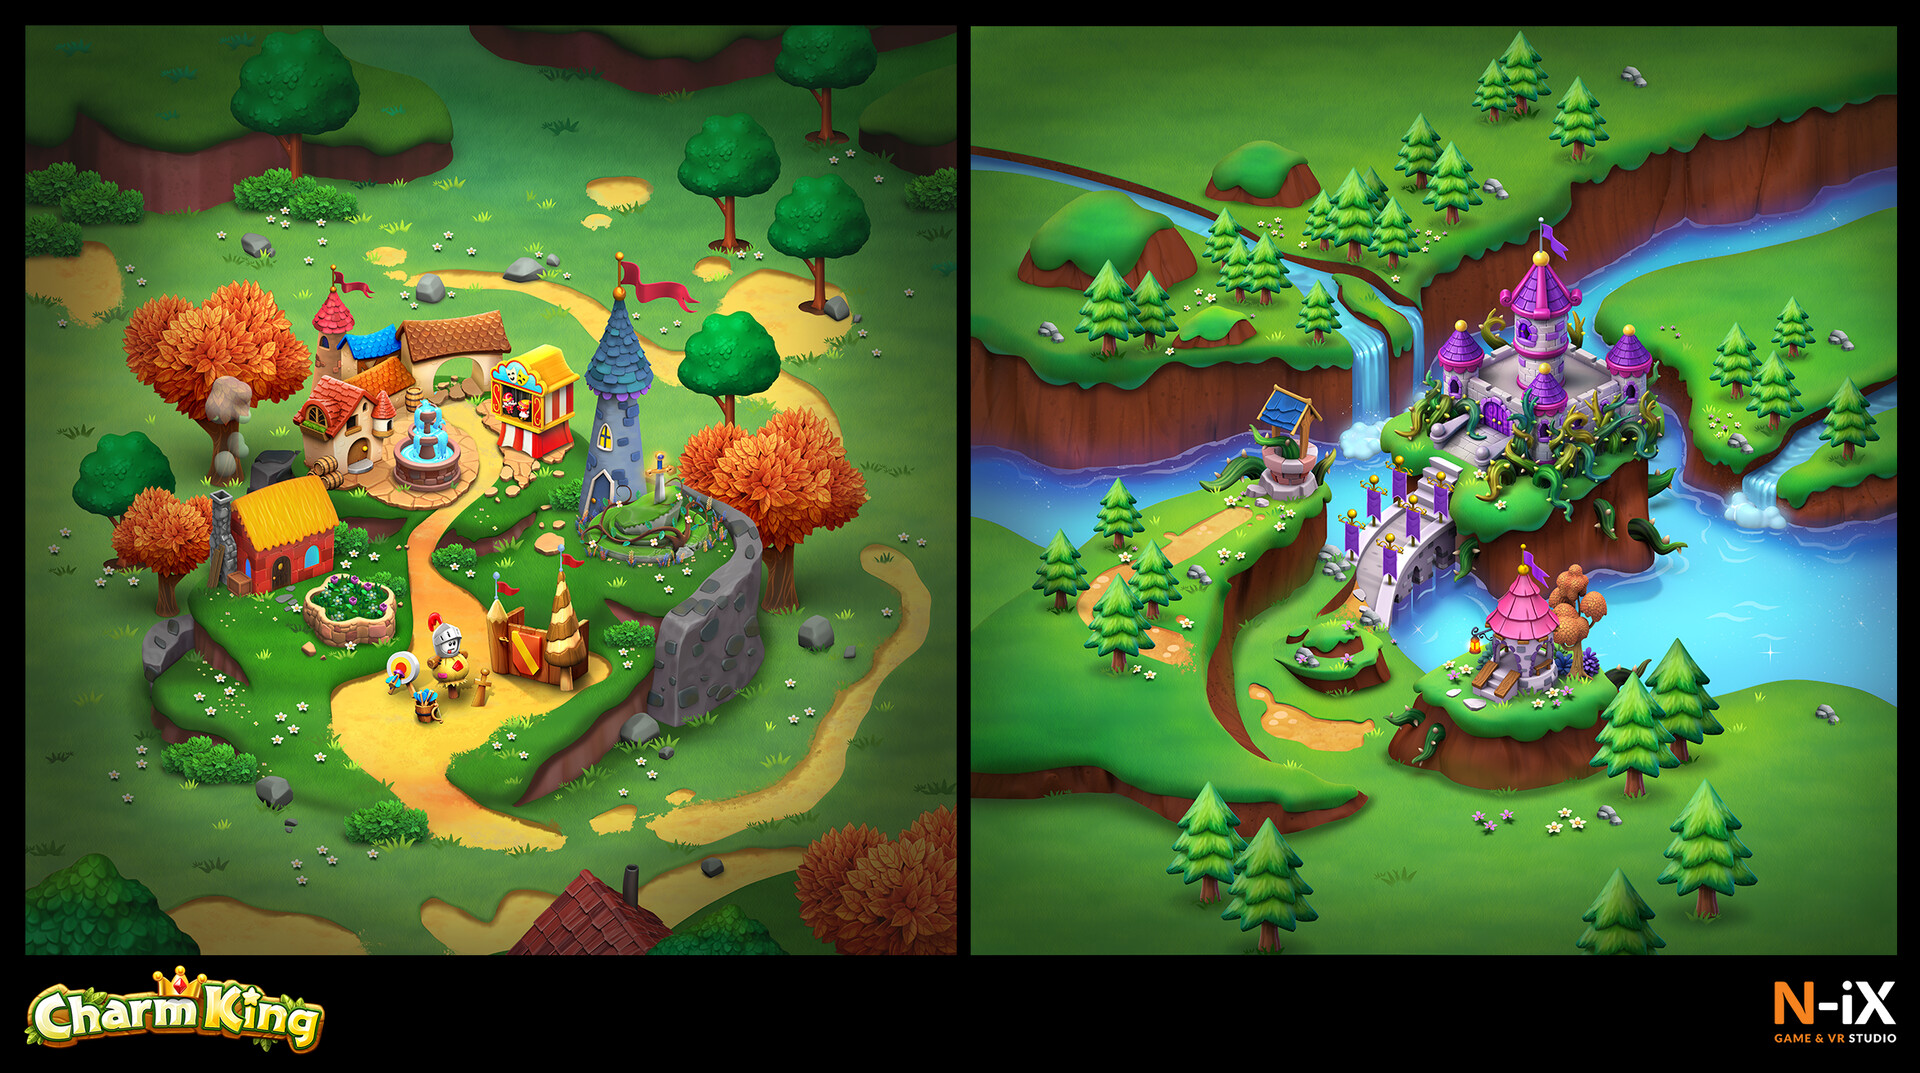 Charm King Examples of map artwork